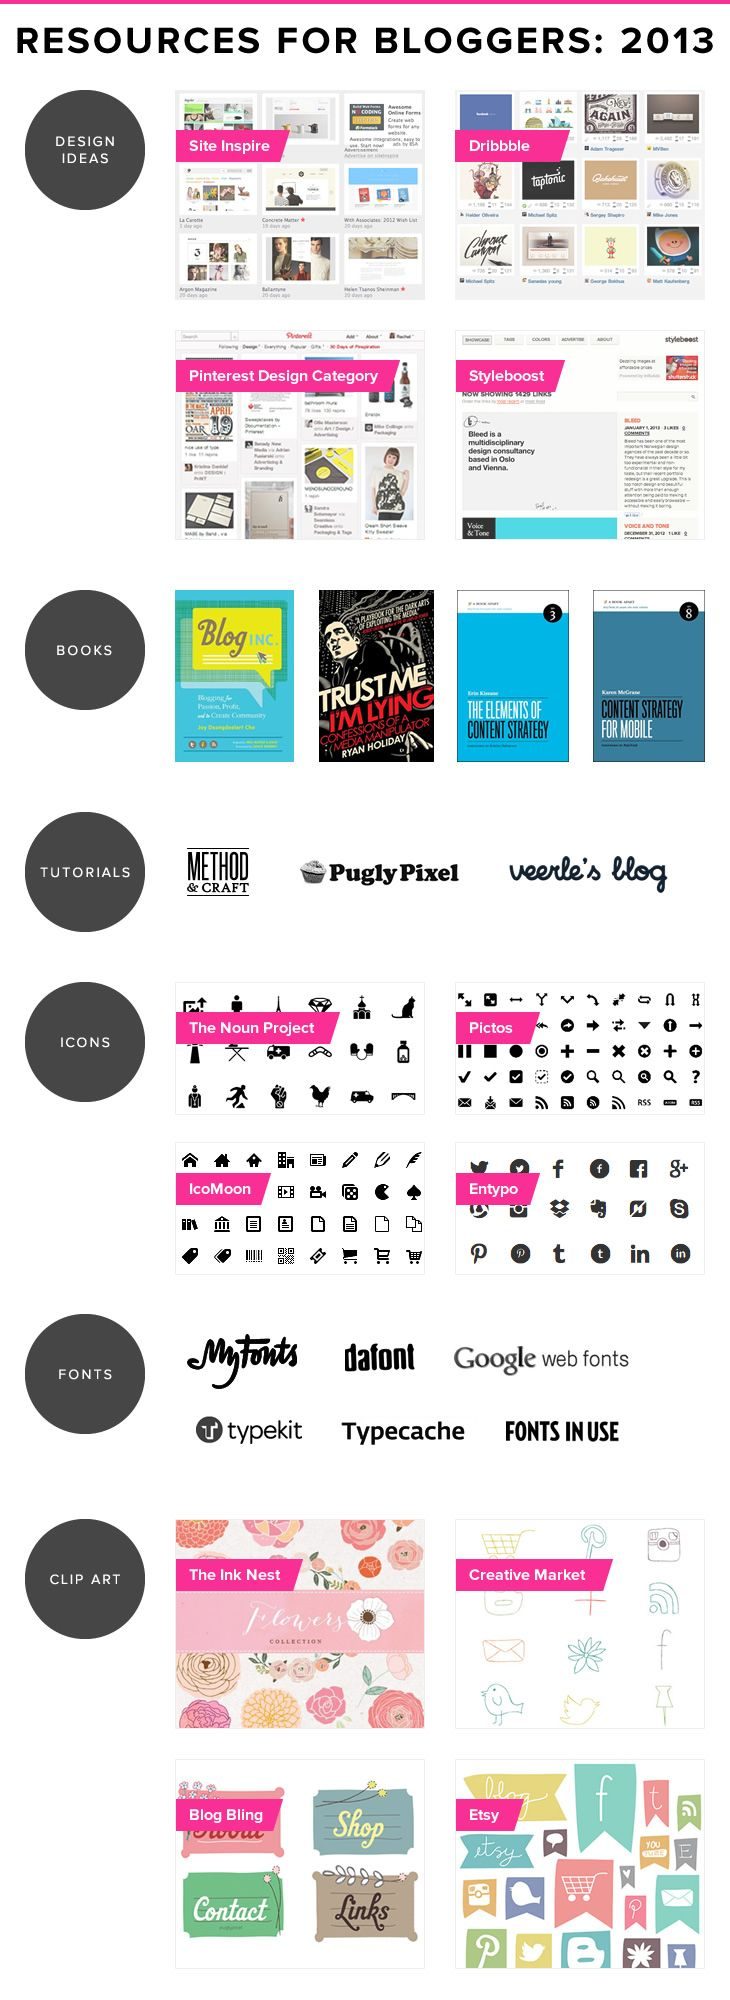 Resources for Bloggers: 2013